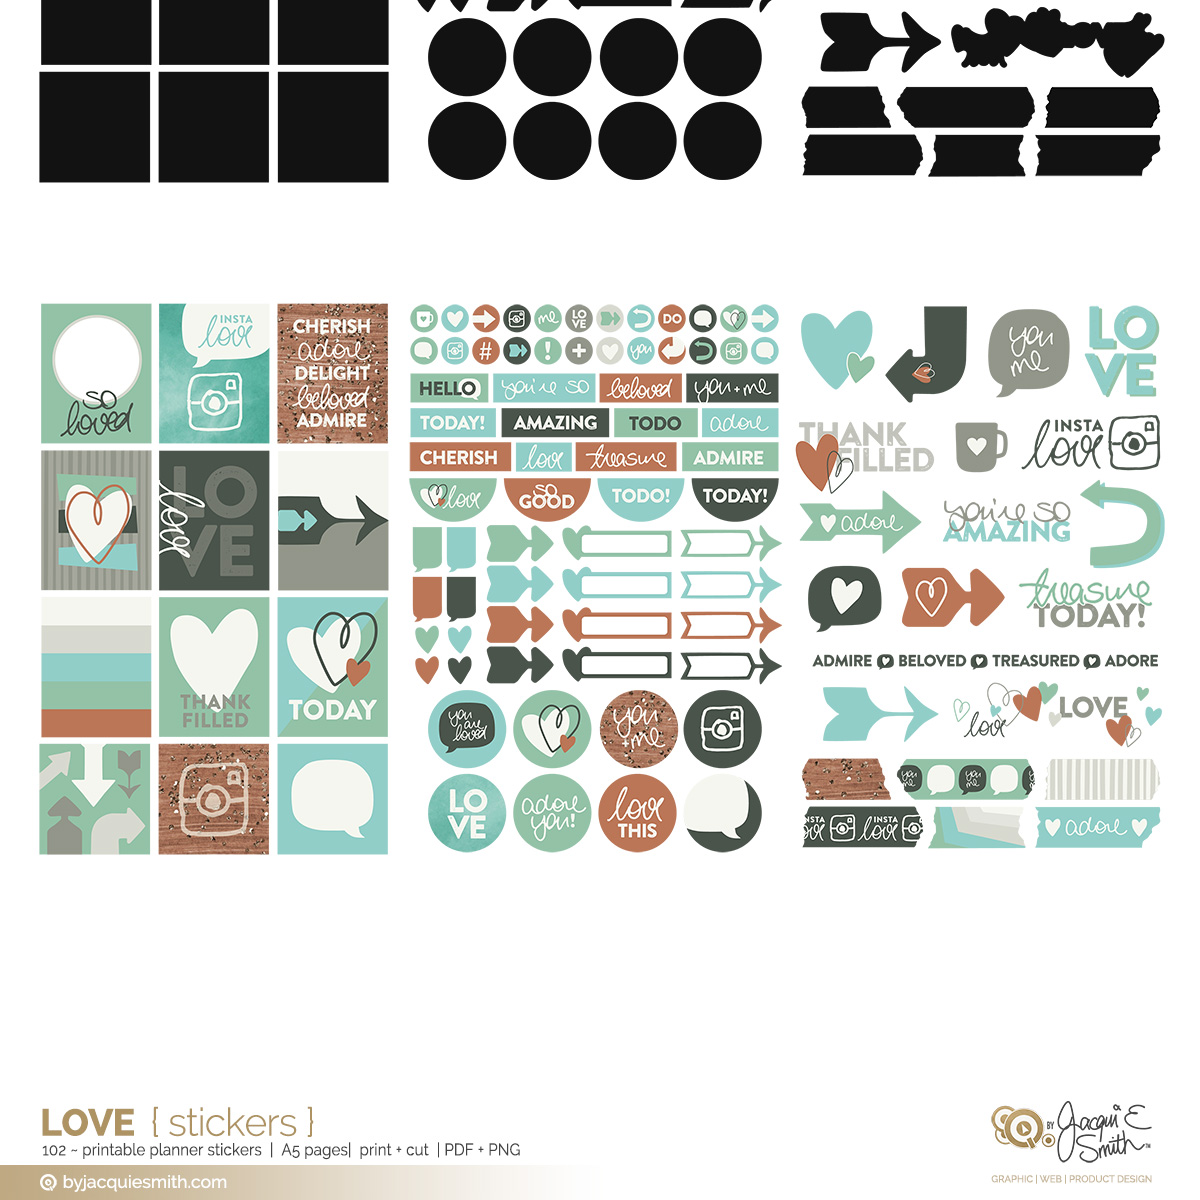 Love printable stickers at byjacquiesmith.com